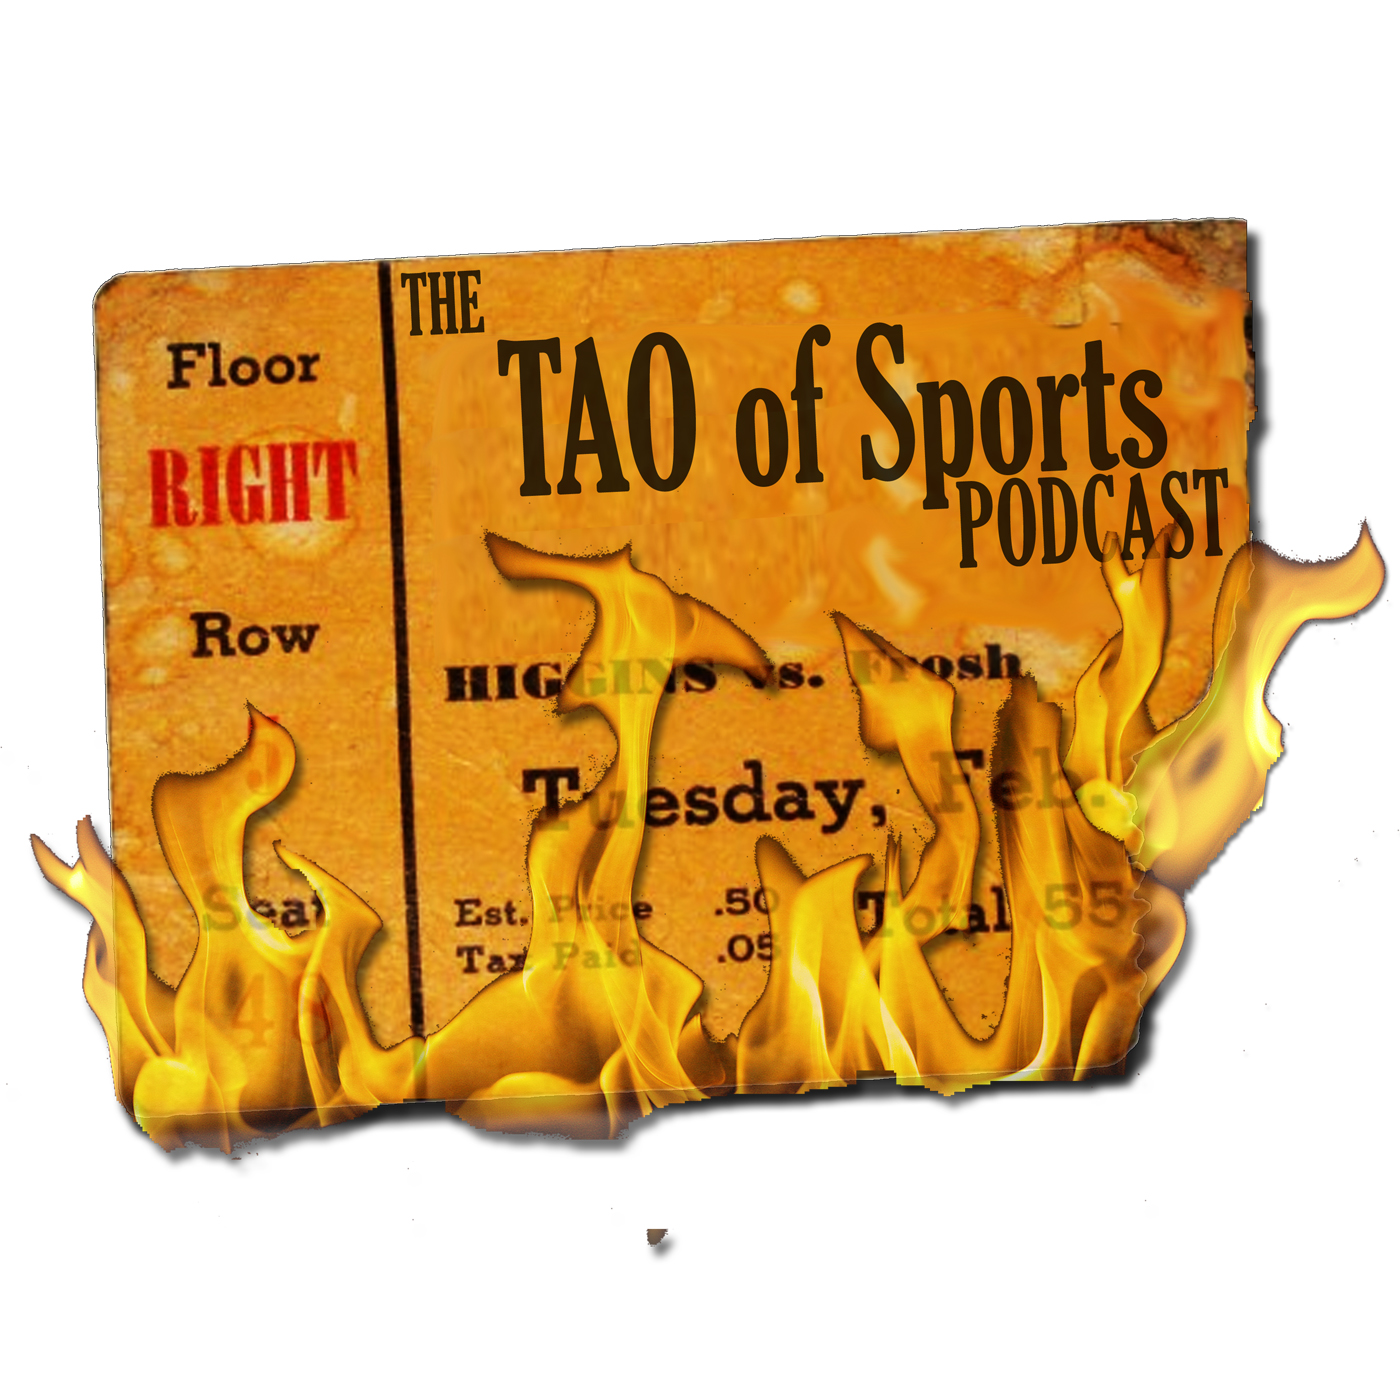 45cc92c52 The Tao of Sports Podcast – The Definitive Sports